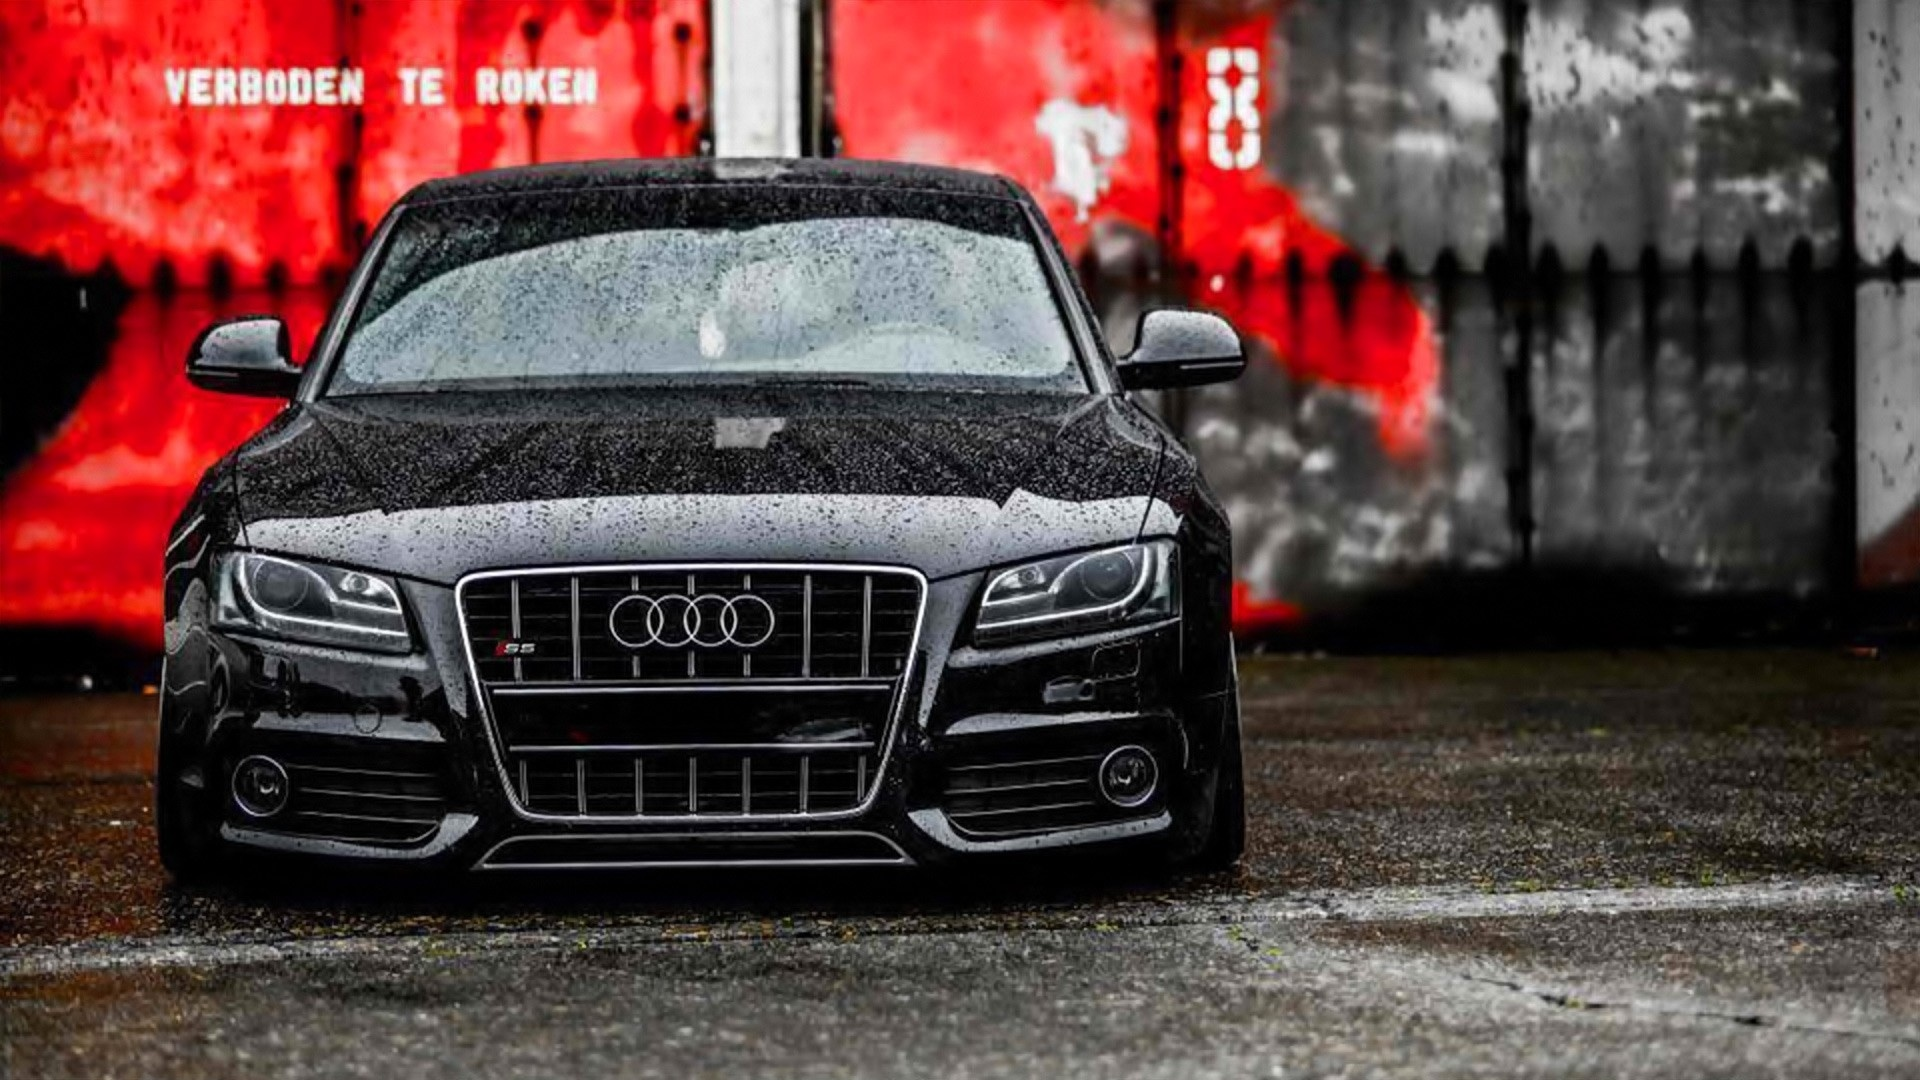 Cool Audi RS5 Wallpaper